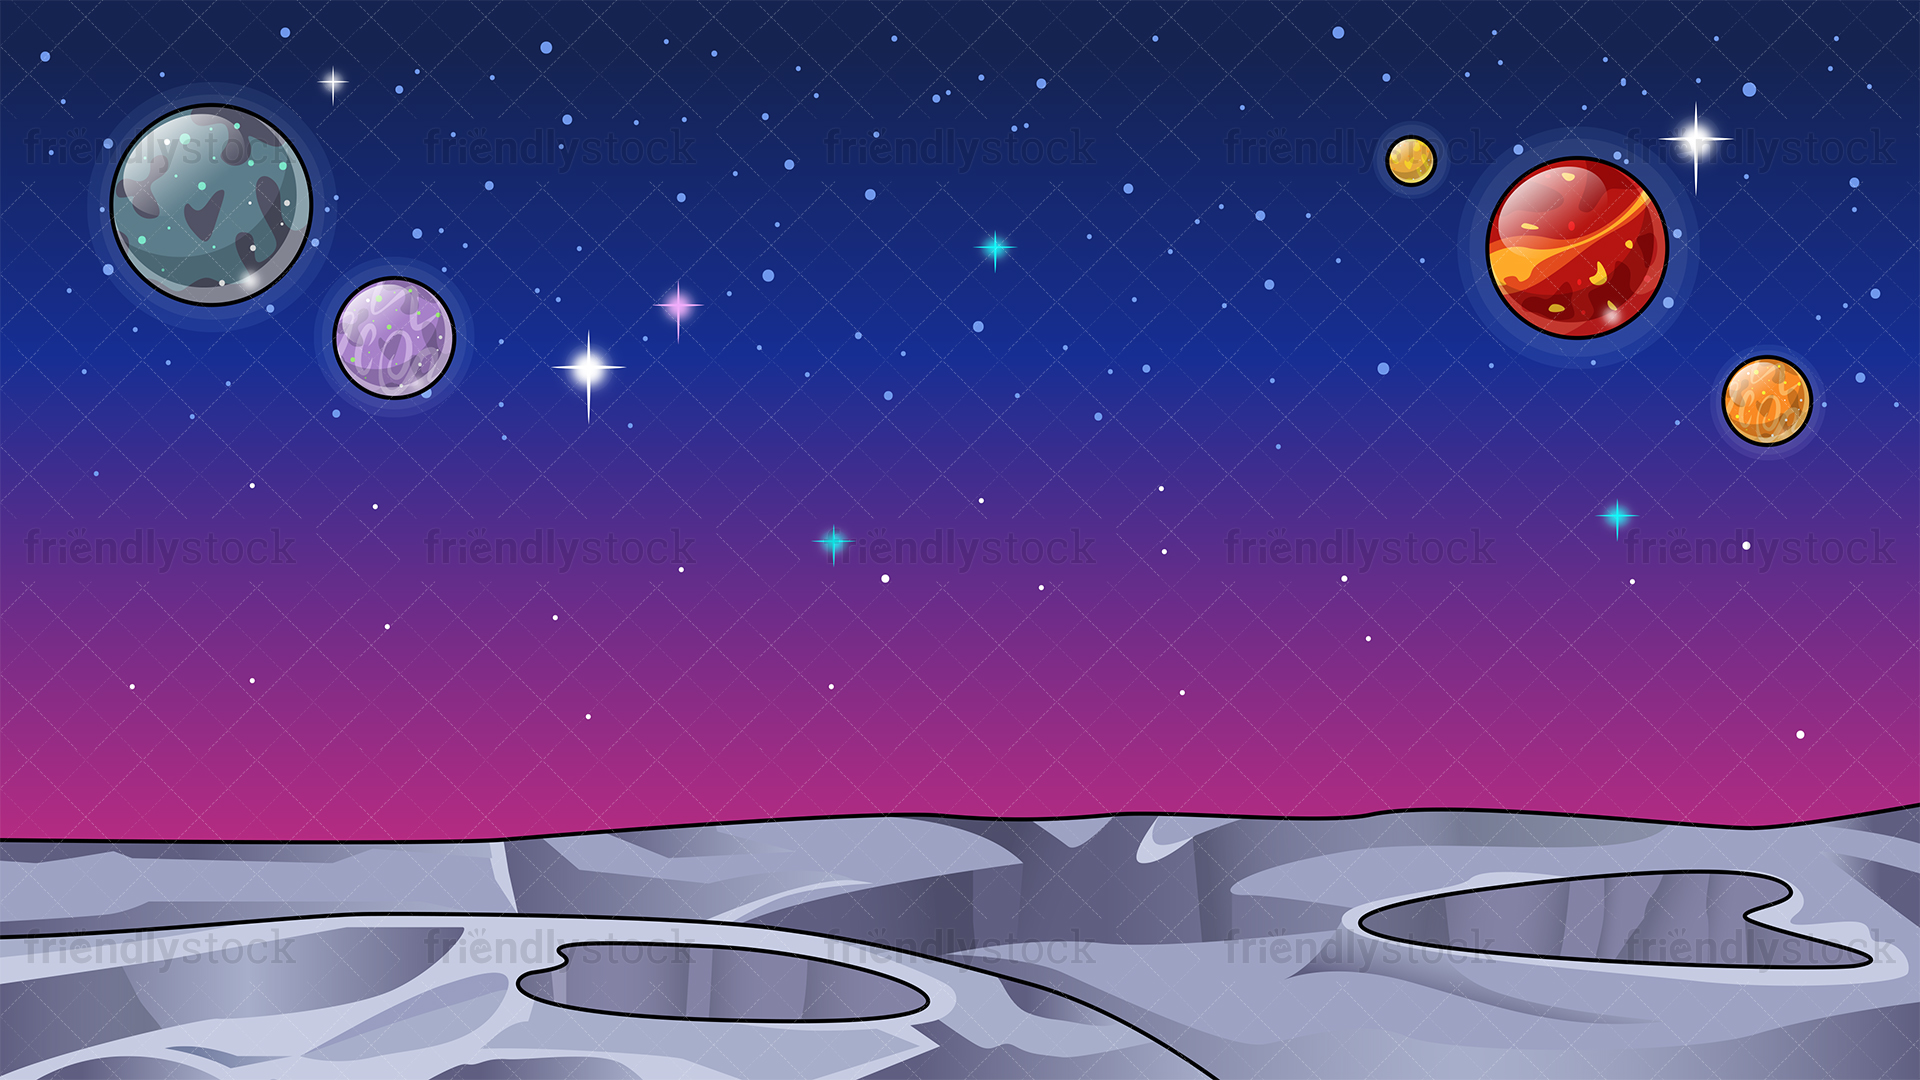 Barren Alien World Space Background Cartoon Clipart Vector 1920x1080